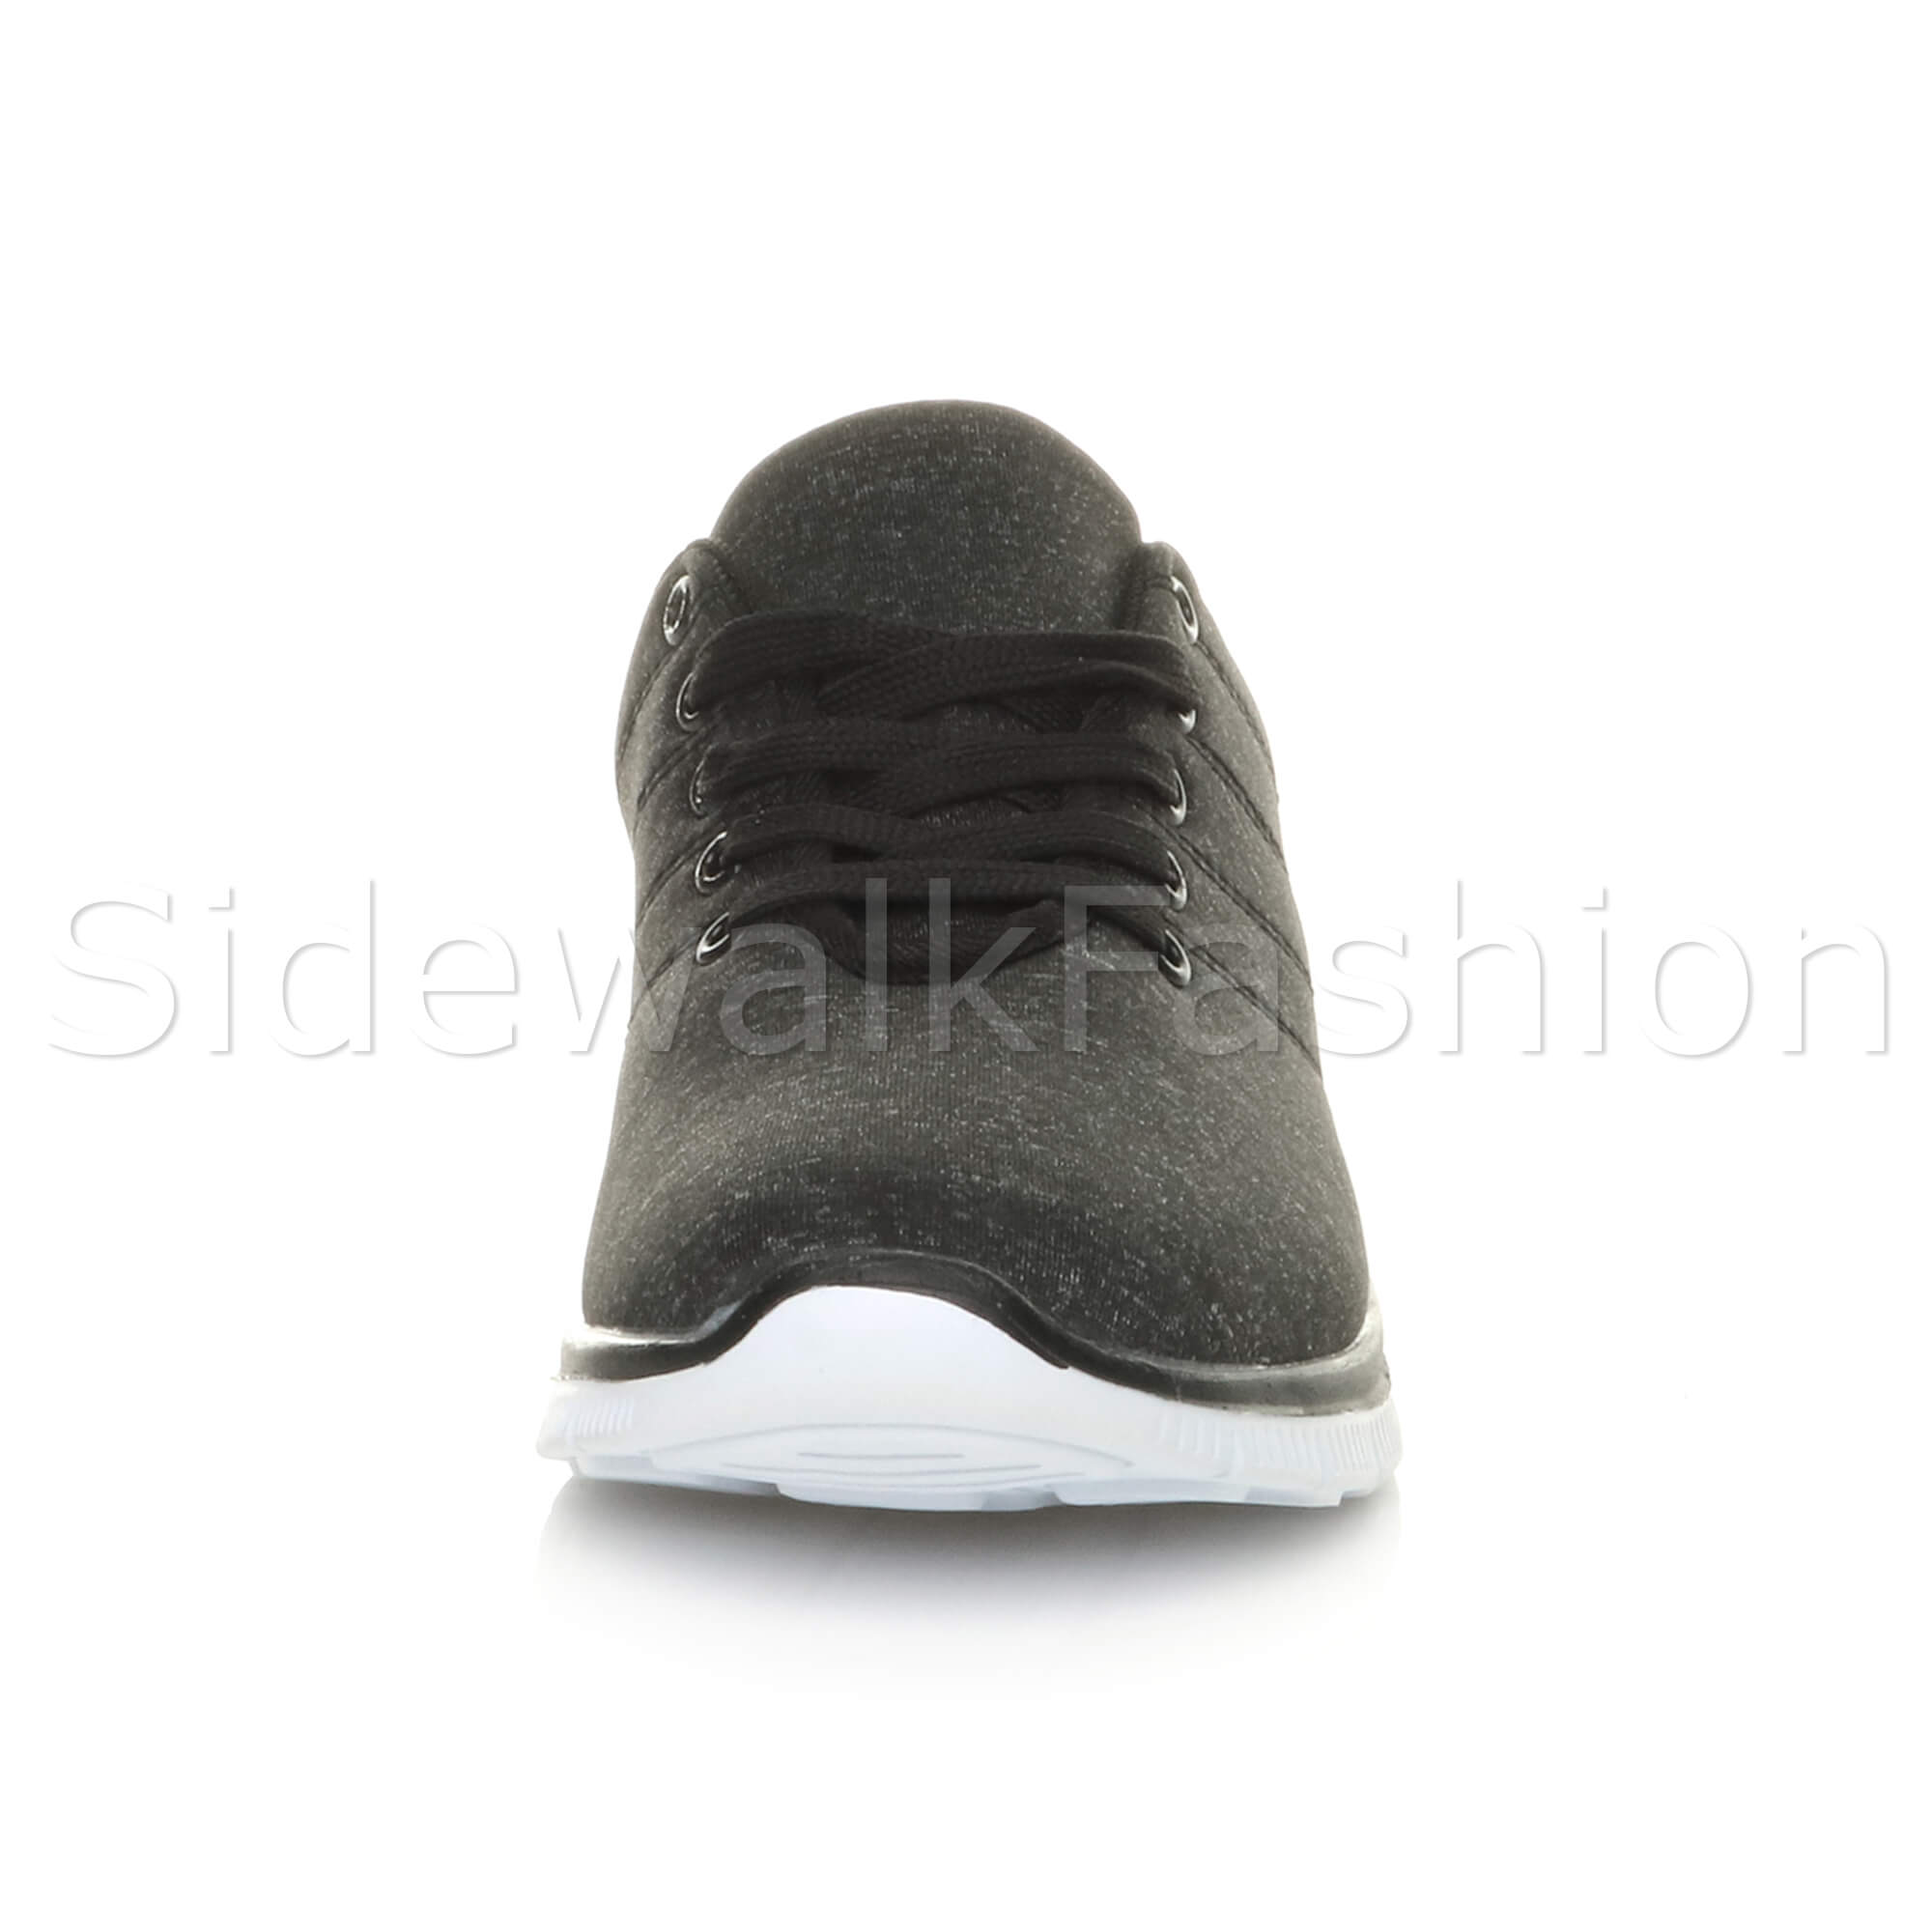 Womens-ladies-comfort-memory-foam-lace-up-trainers-activewear-sneakers-gym-shoes thumbnail 25